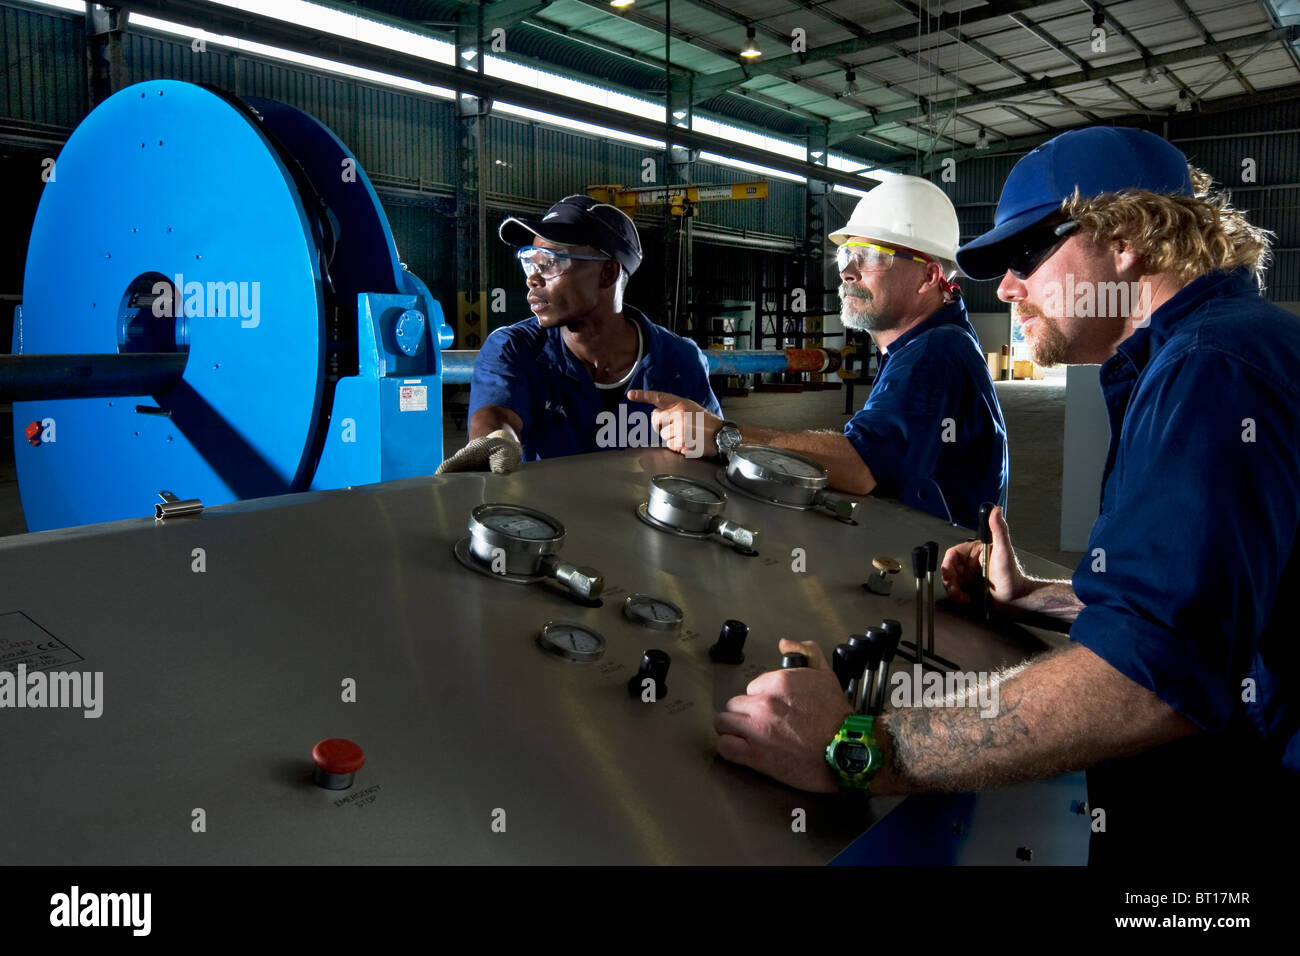 Luba Oil Freeport: Assembling well bore clean up tools for completing offshore oil production - Stock Image